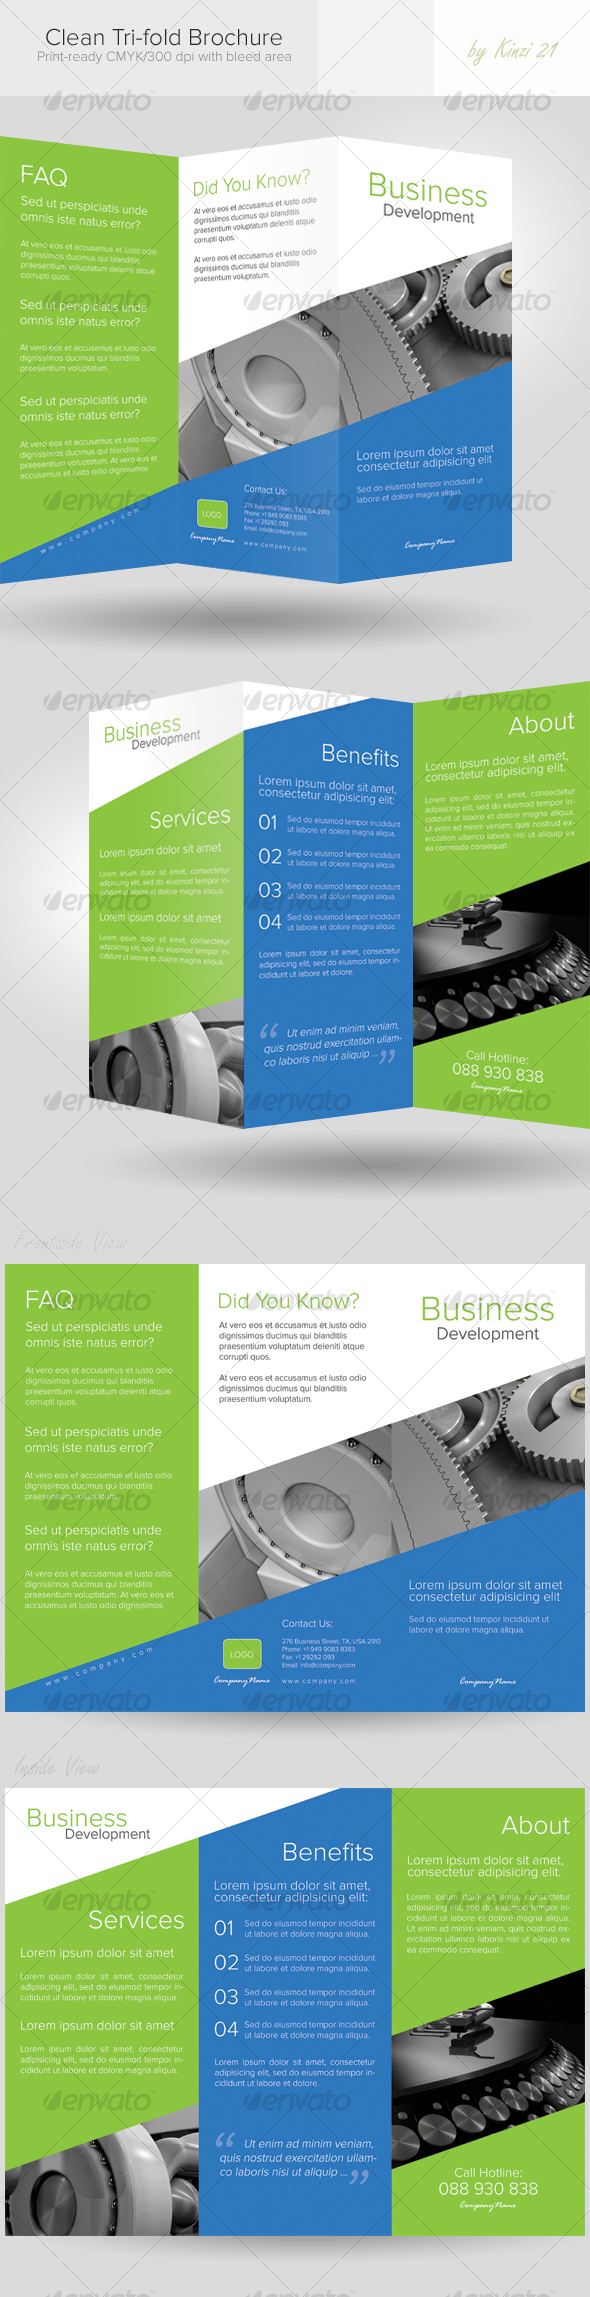 Clean Tri-fold Brochure - Corporate Brochures